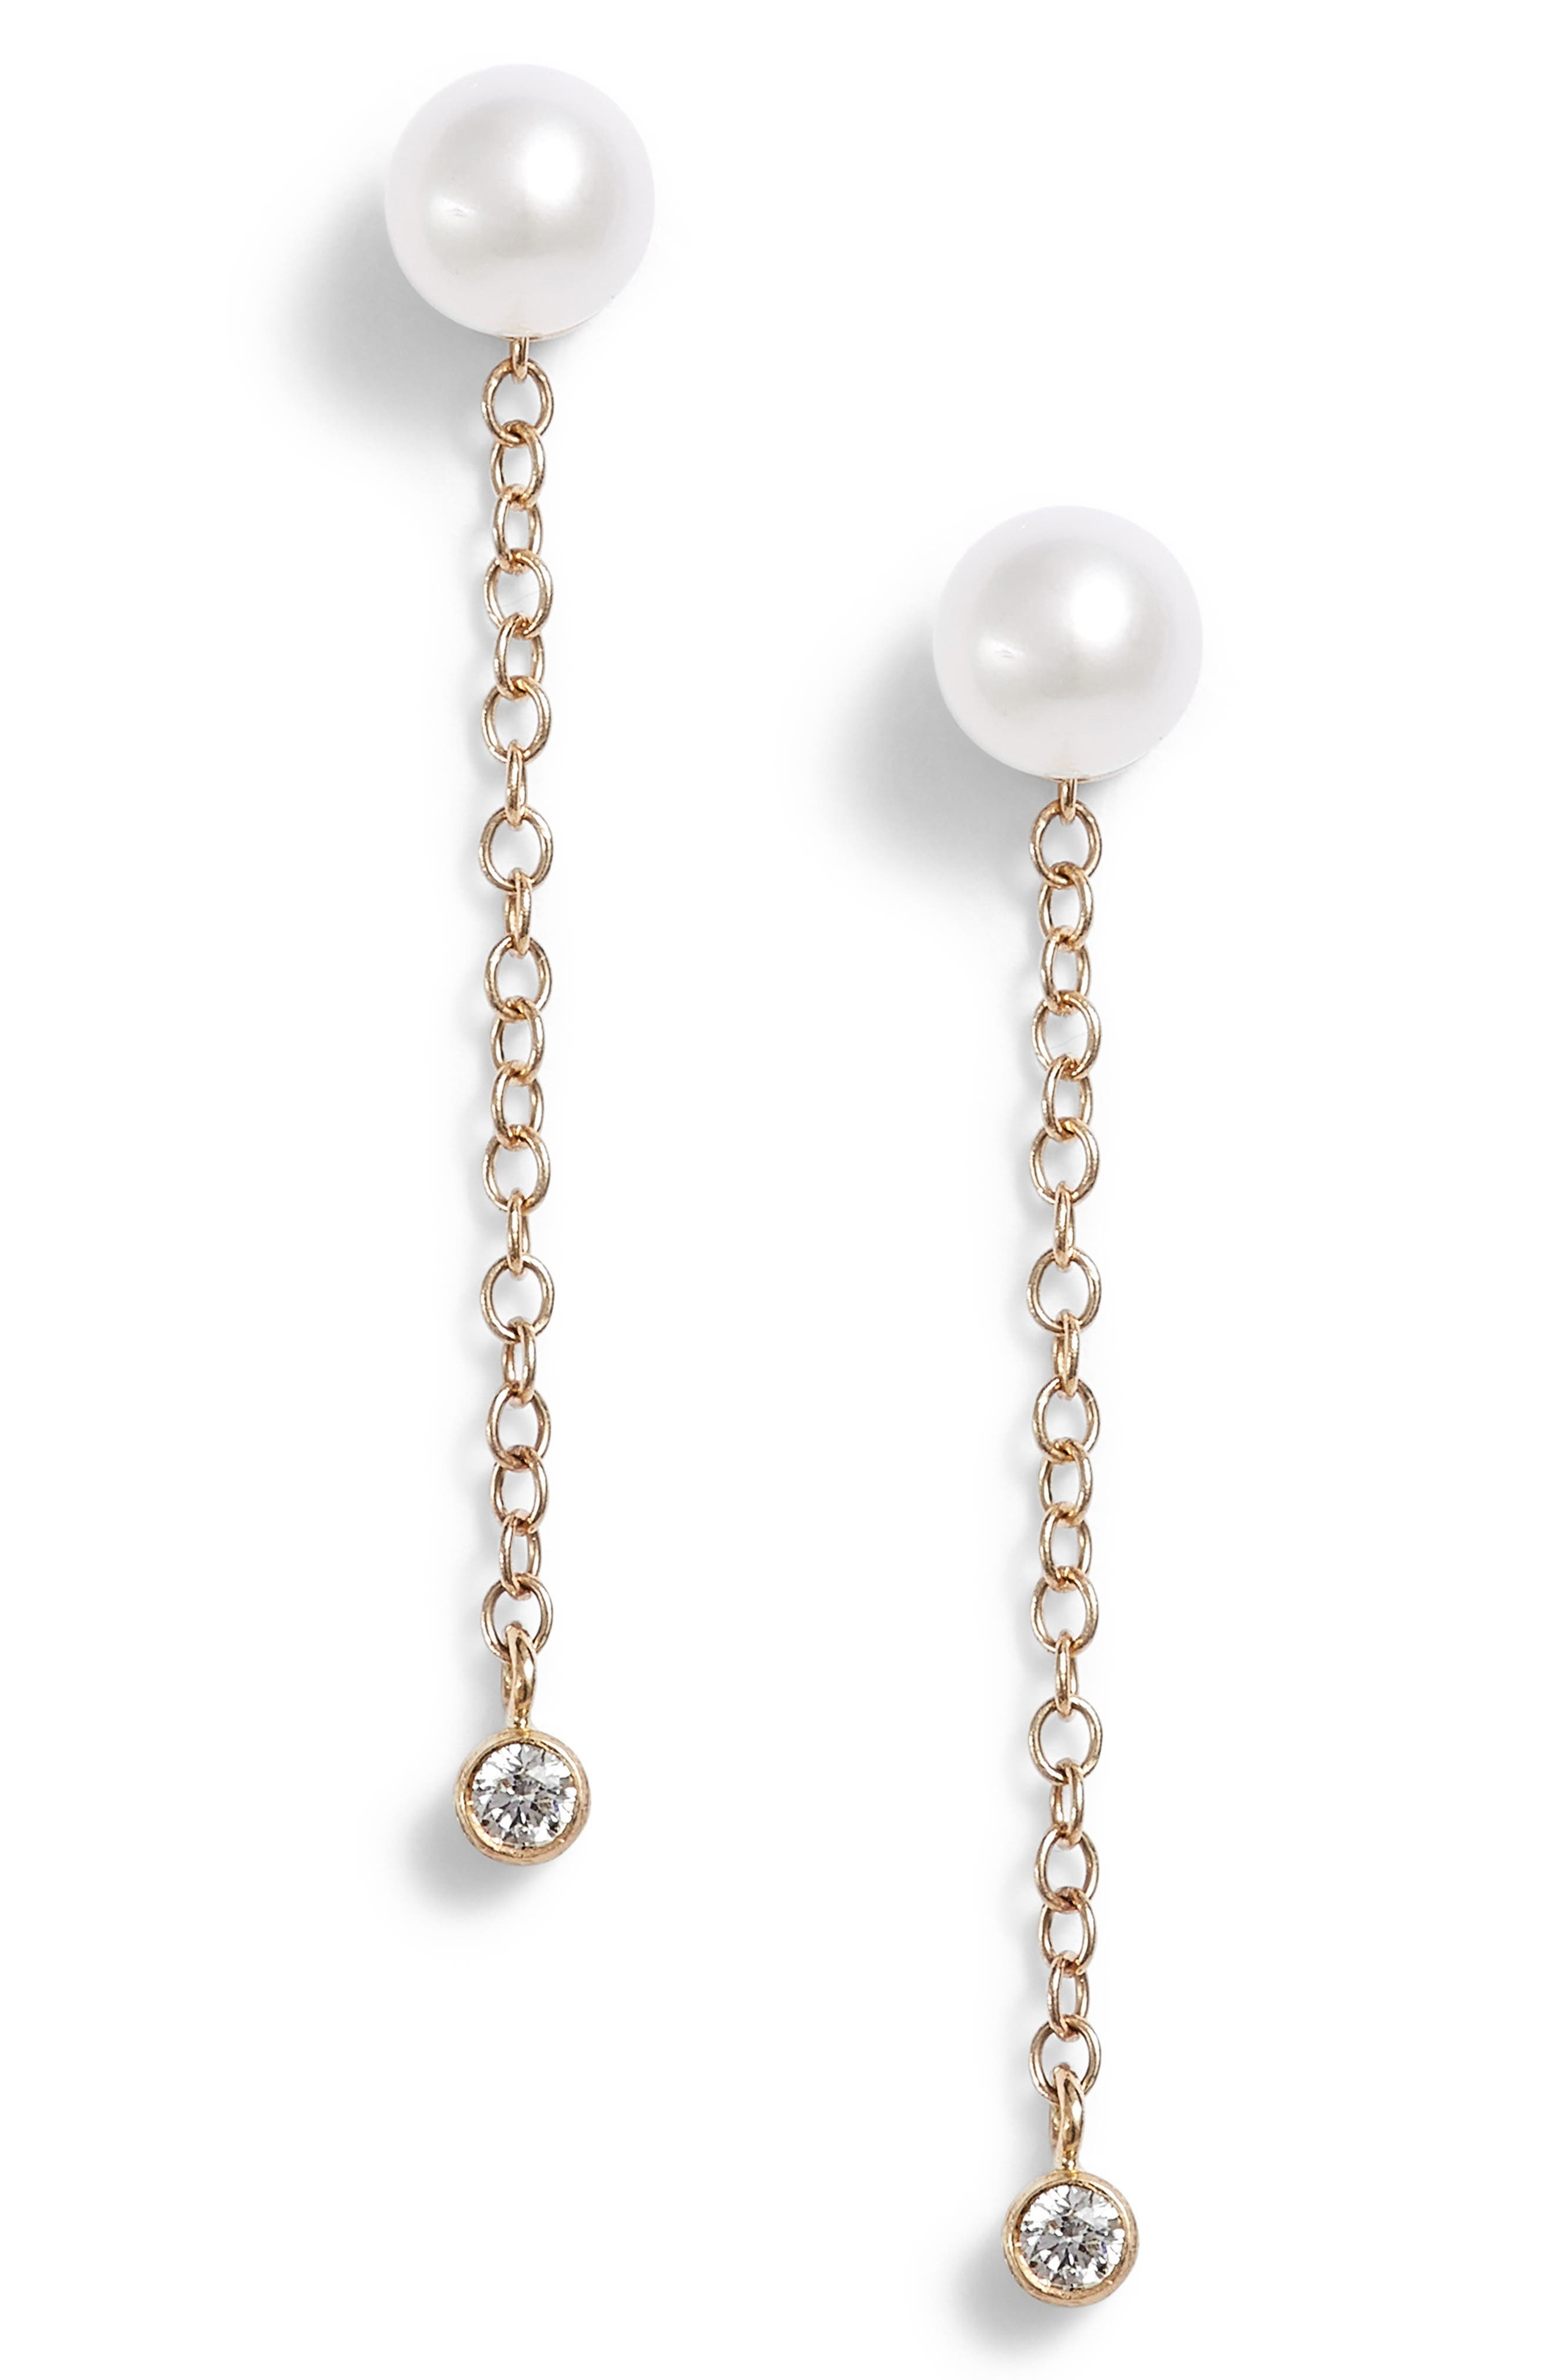 Baby Pearl & Diamond Stud Earrings,                         Main,                         color, YELLOW GOLD/ PEARL